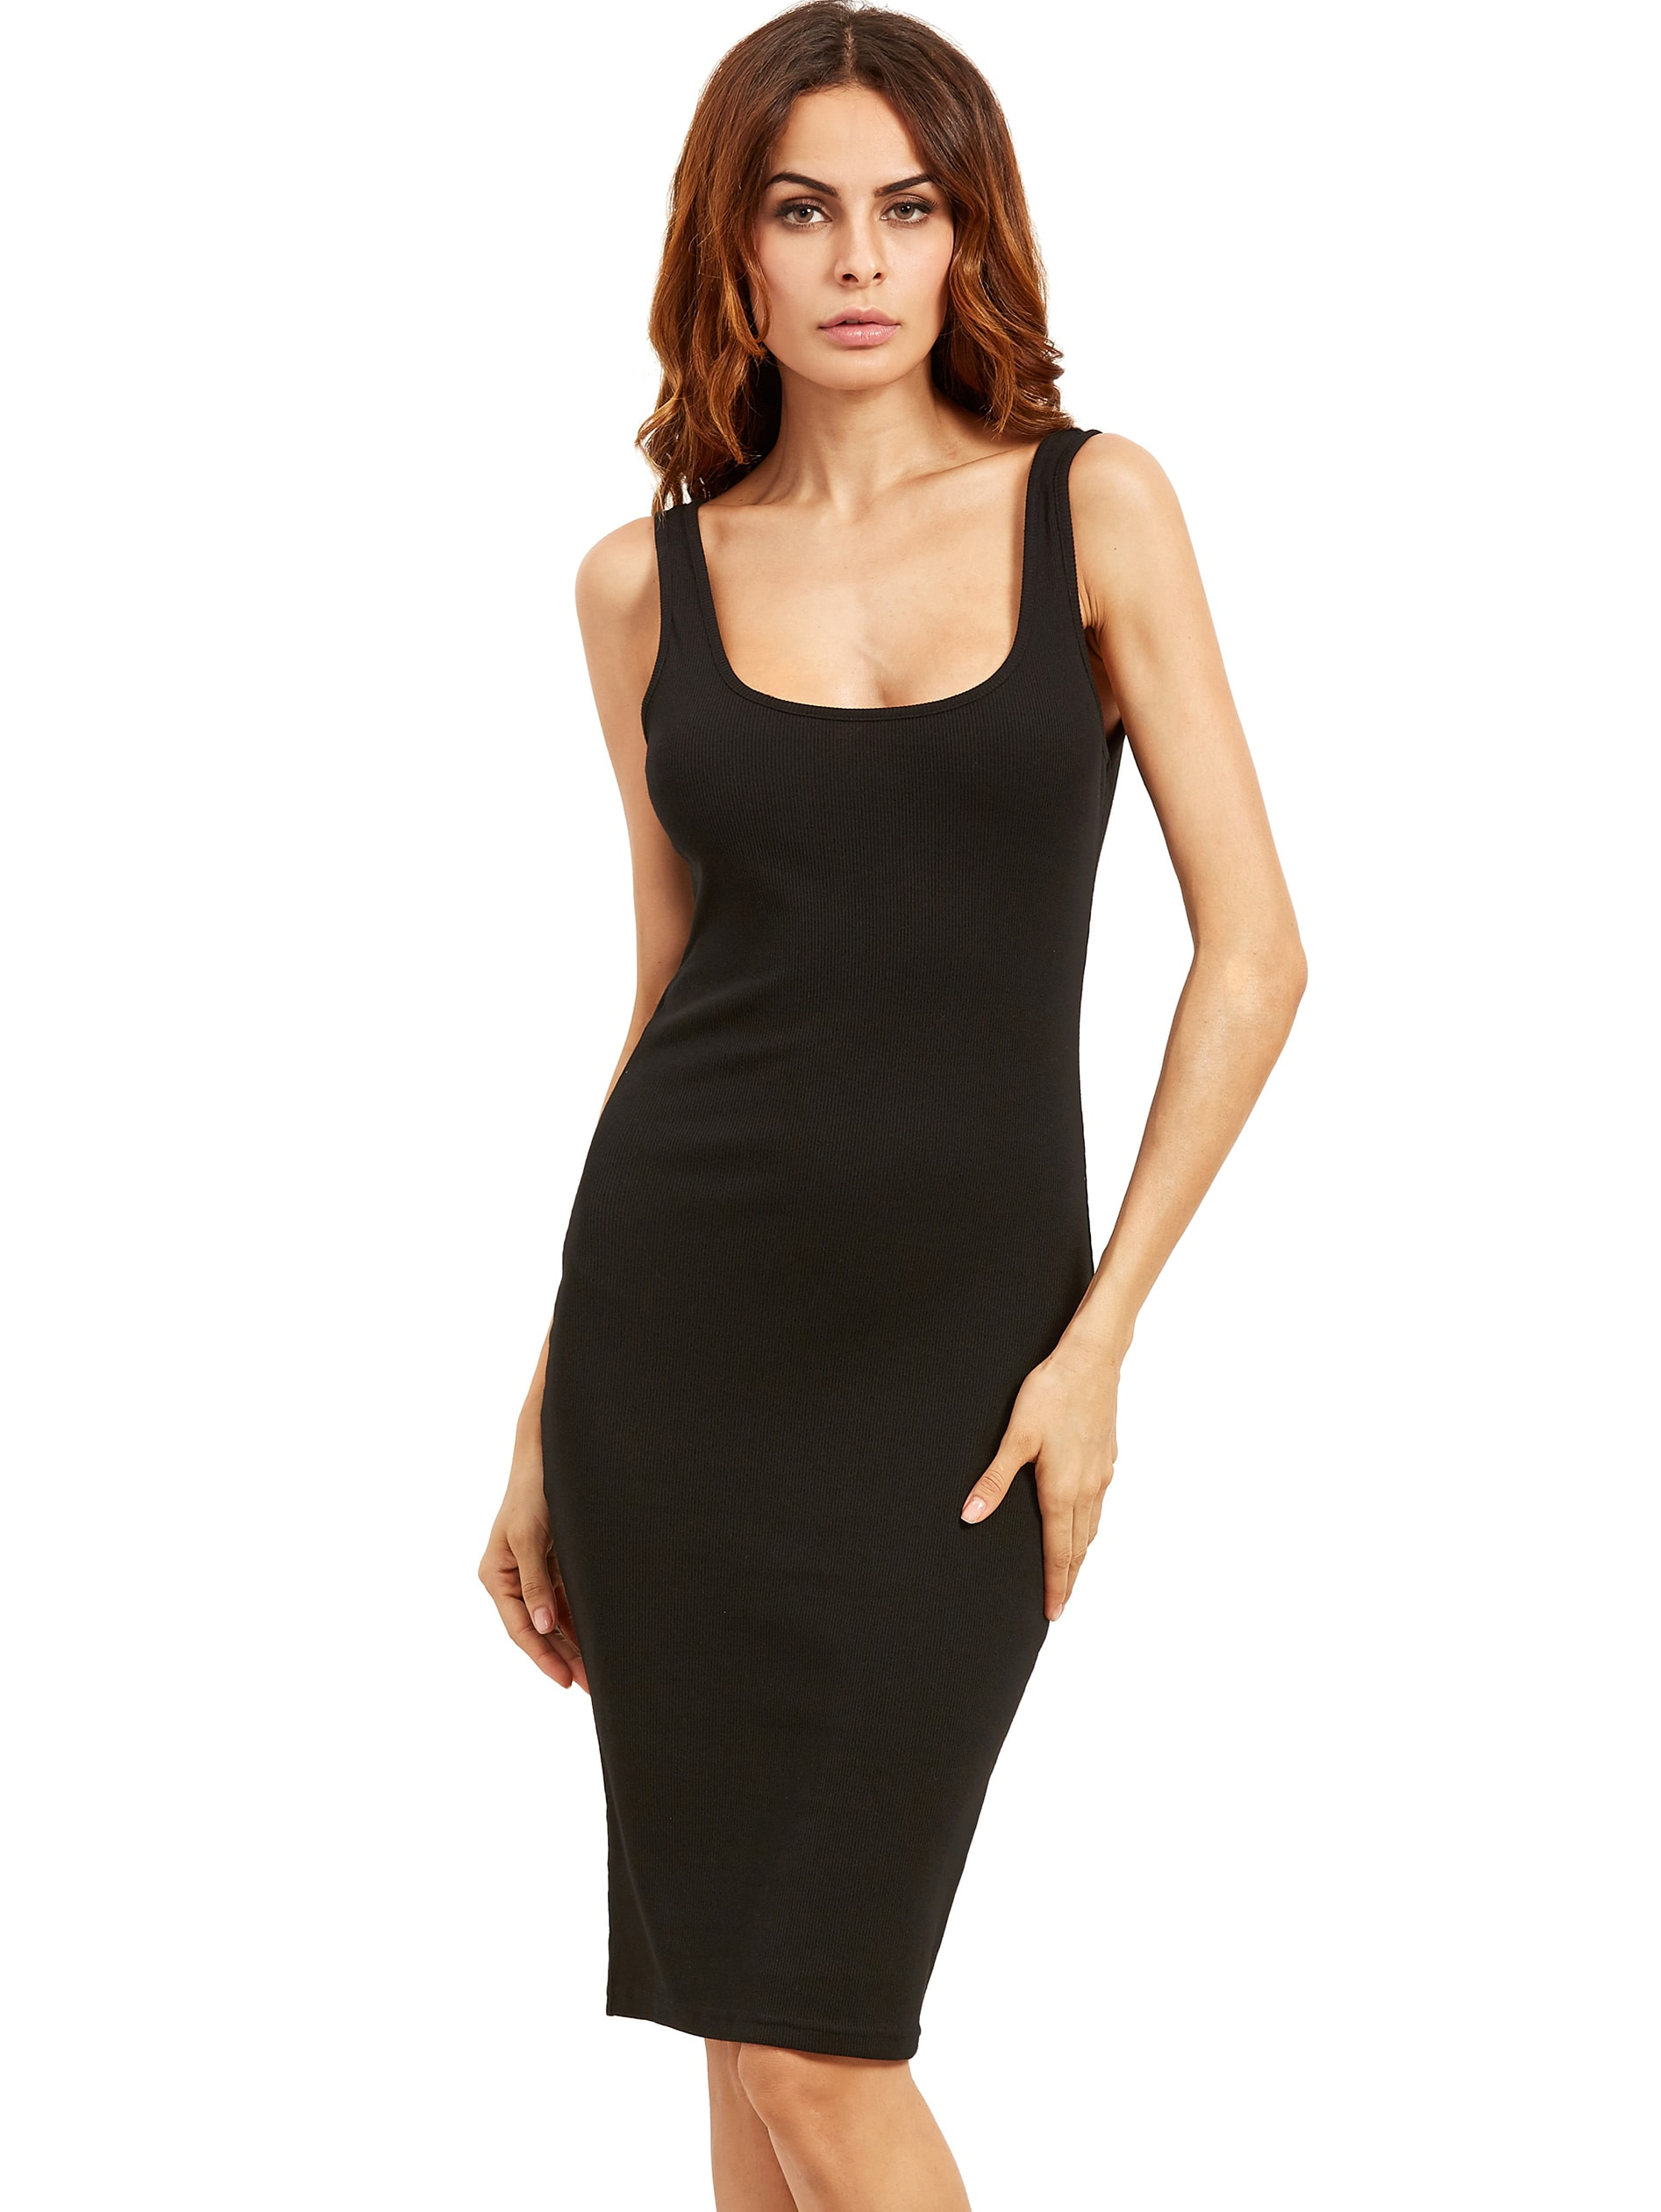 Double Scoop Ribbed Dress dress160803765